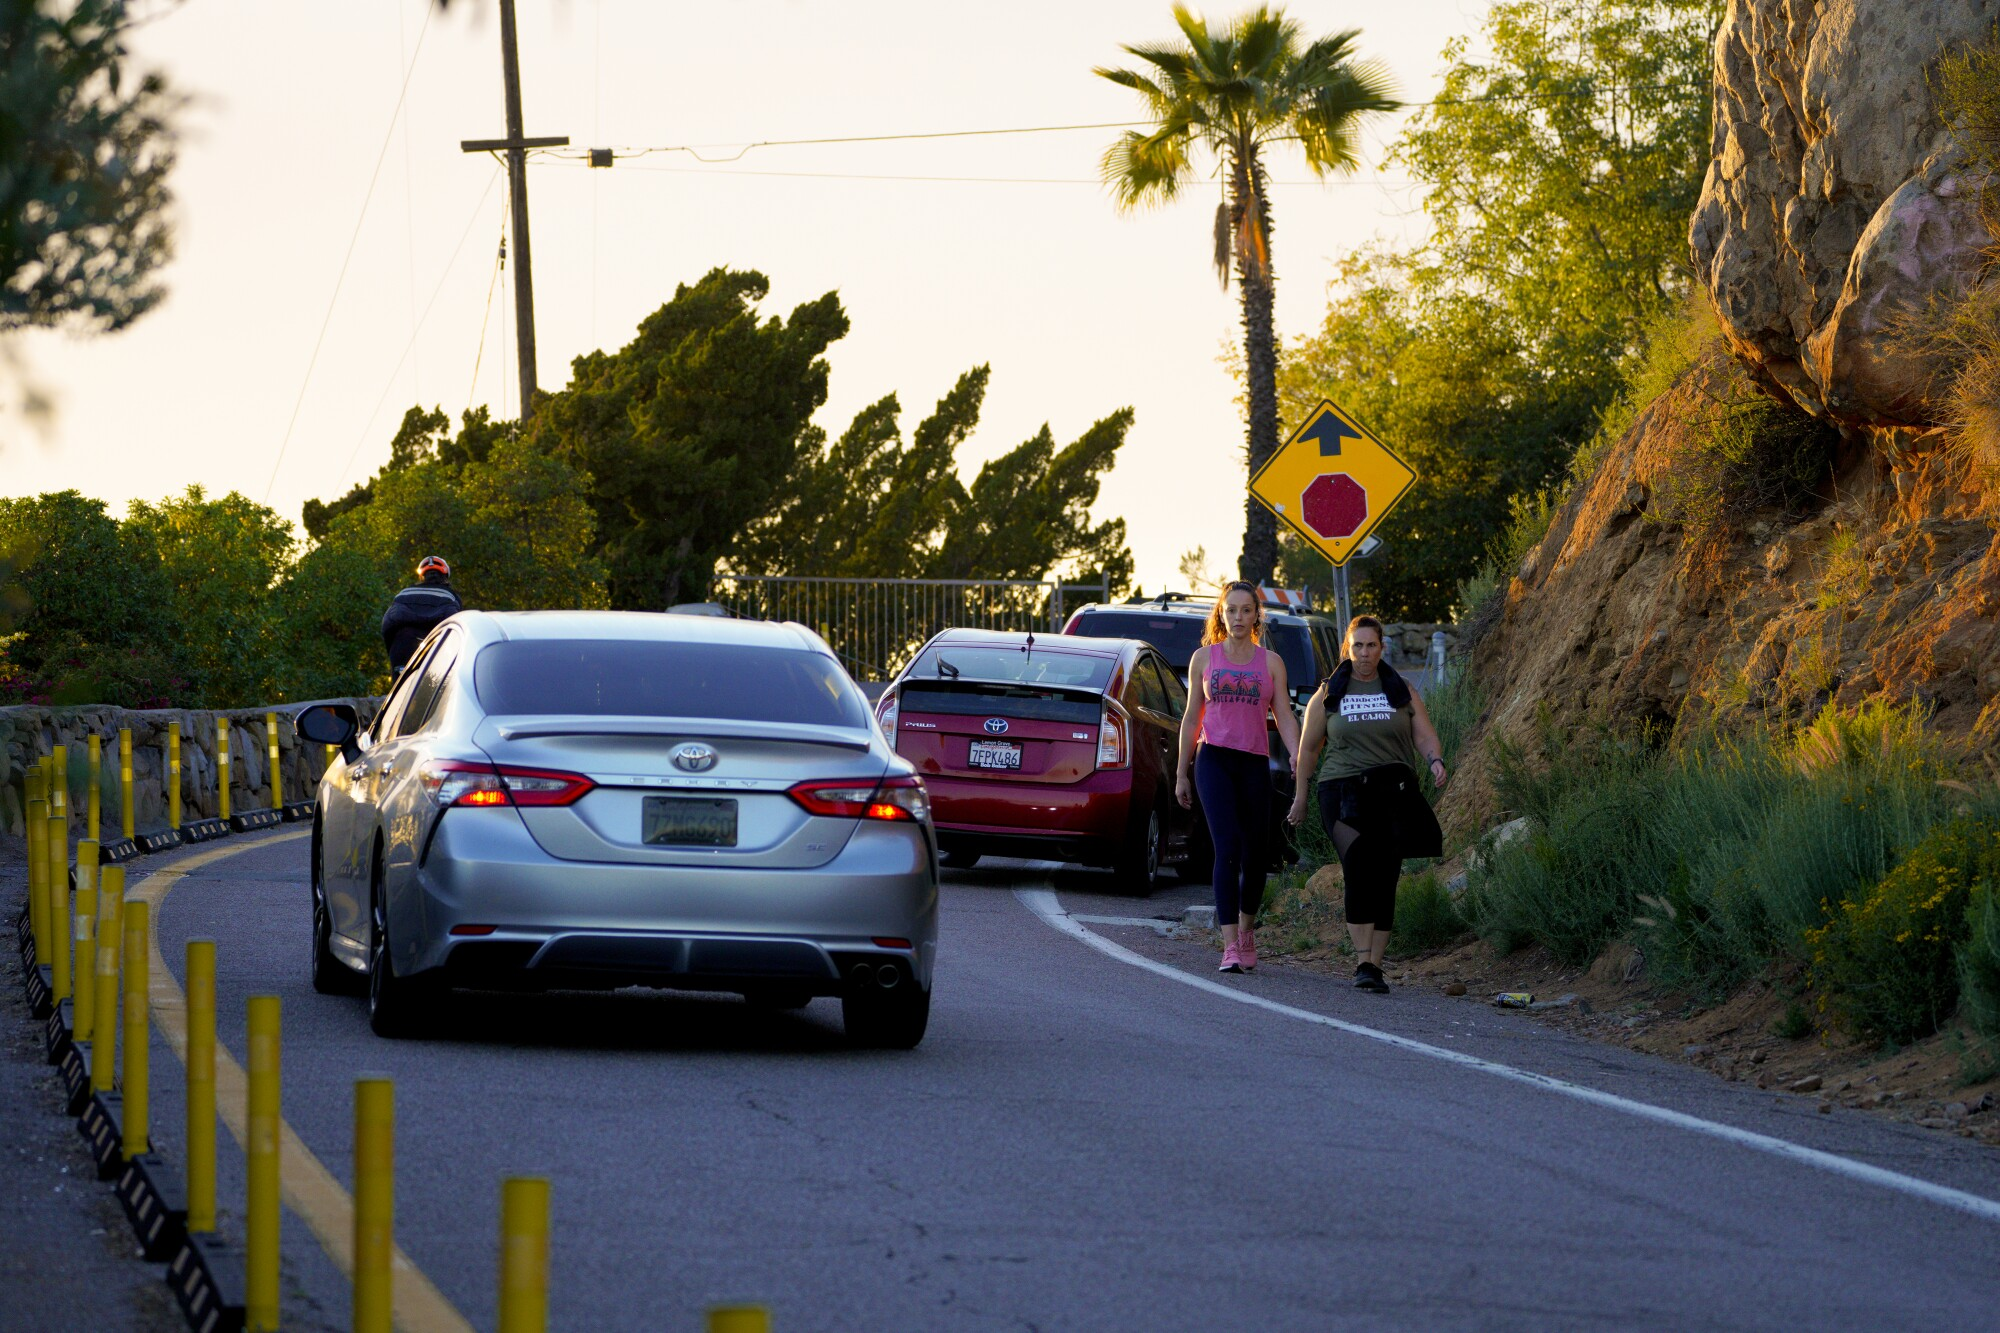 A motorist, a cyclist and pedestrians navigate around several cars illegally parked on Mount Helix Drive.